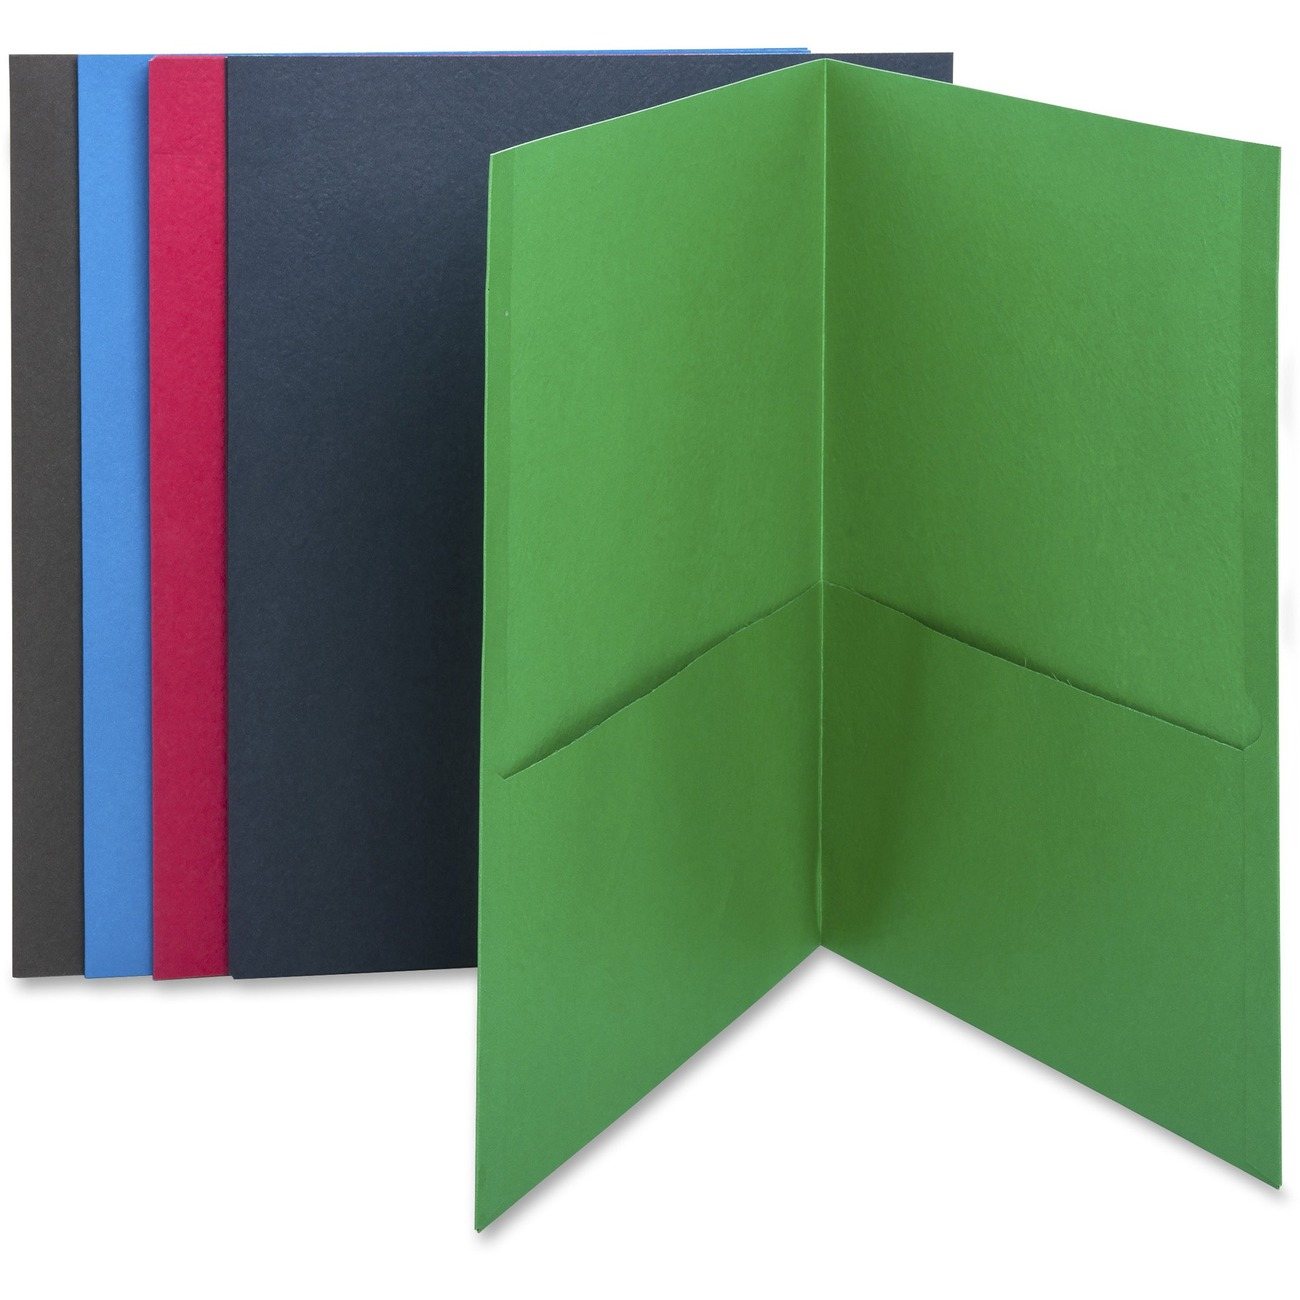 Brooks stationers ltd office supplies filing supplies pockets hold up to 100 sheets of letter size loose paper inside front pocket features business card holder folders are made of sturdy paper reheart Images